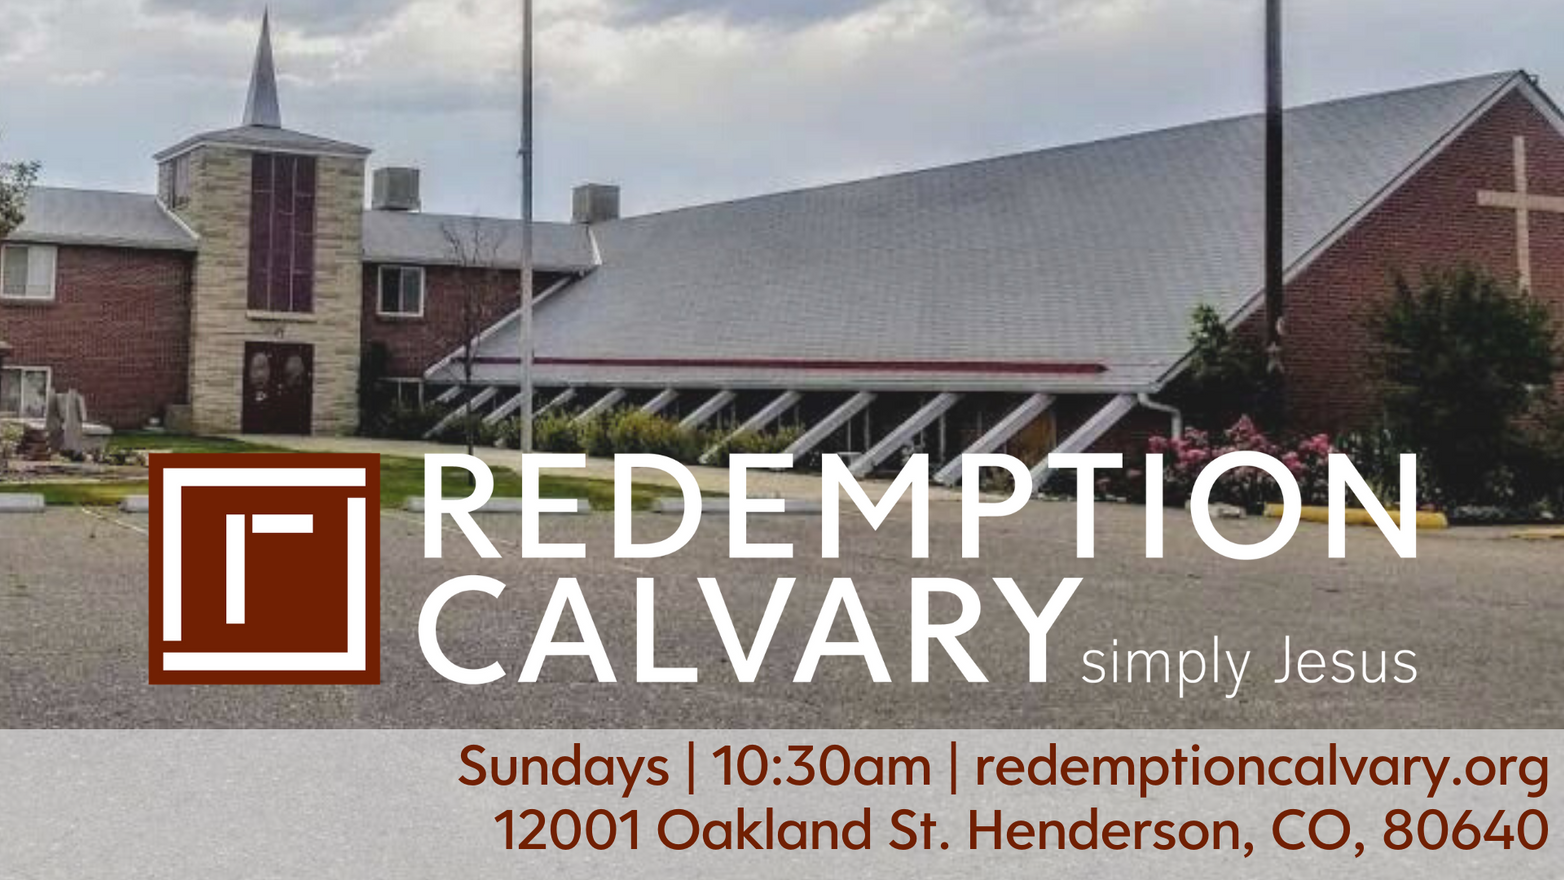 Join us Sundays at 10:30am